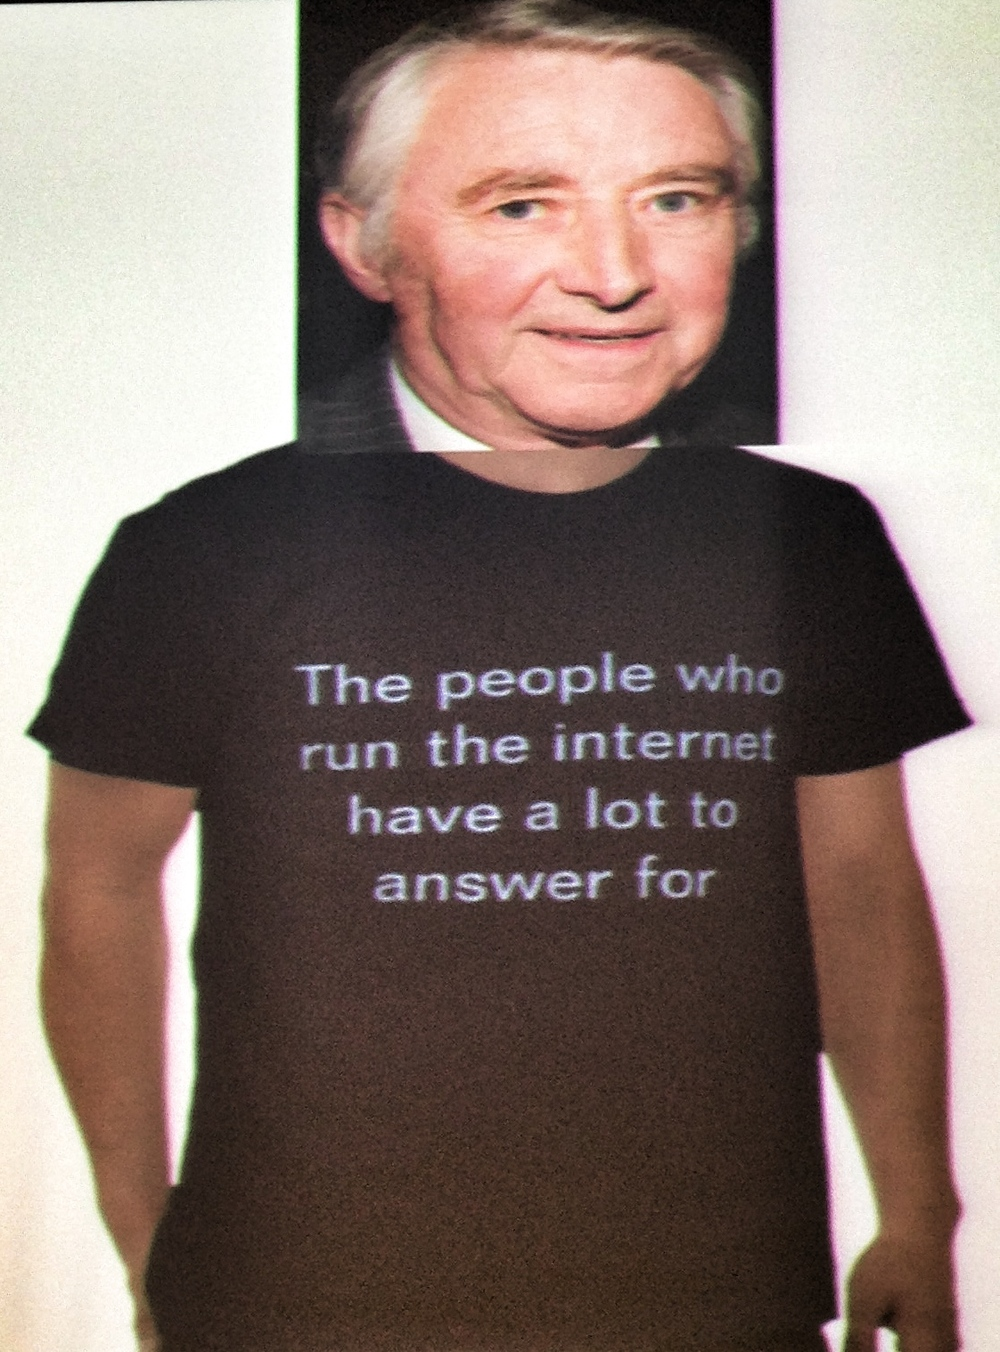 Russell Buckley's David Steel T-shirt